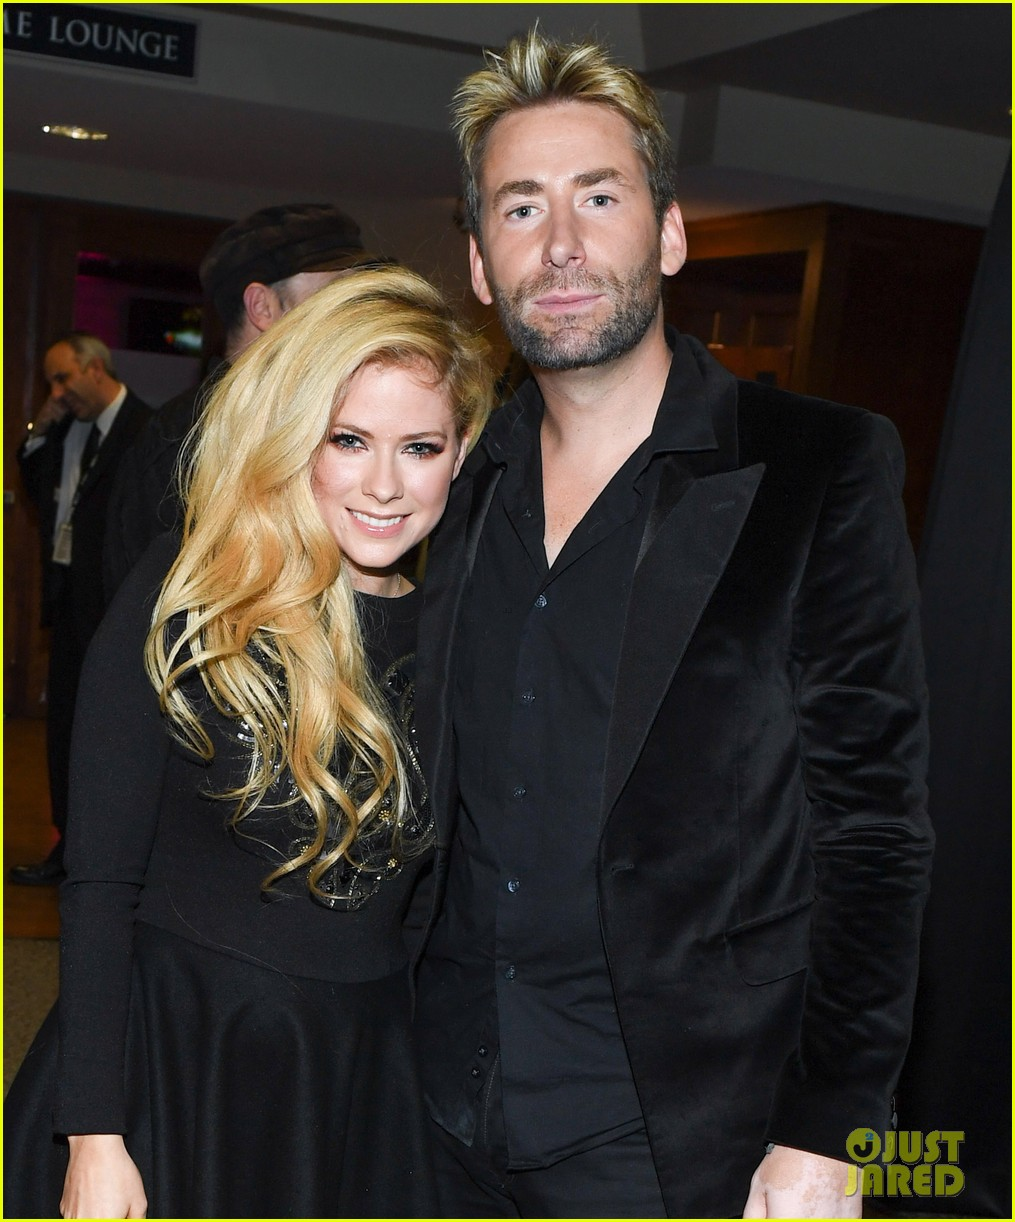 Avril Lavigne Supports Ex Chad Kroeger At Juno Awards 2016 Photo 3622453 Avril Lavigne Chad